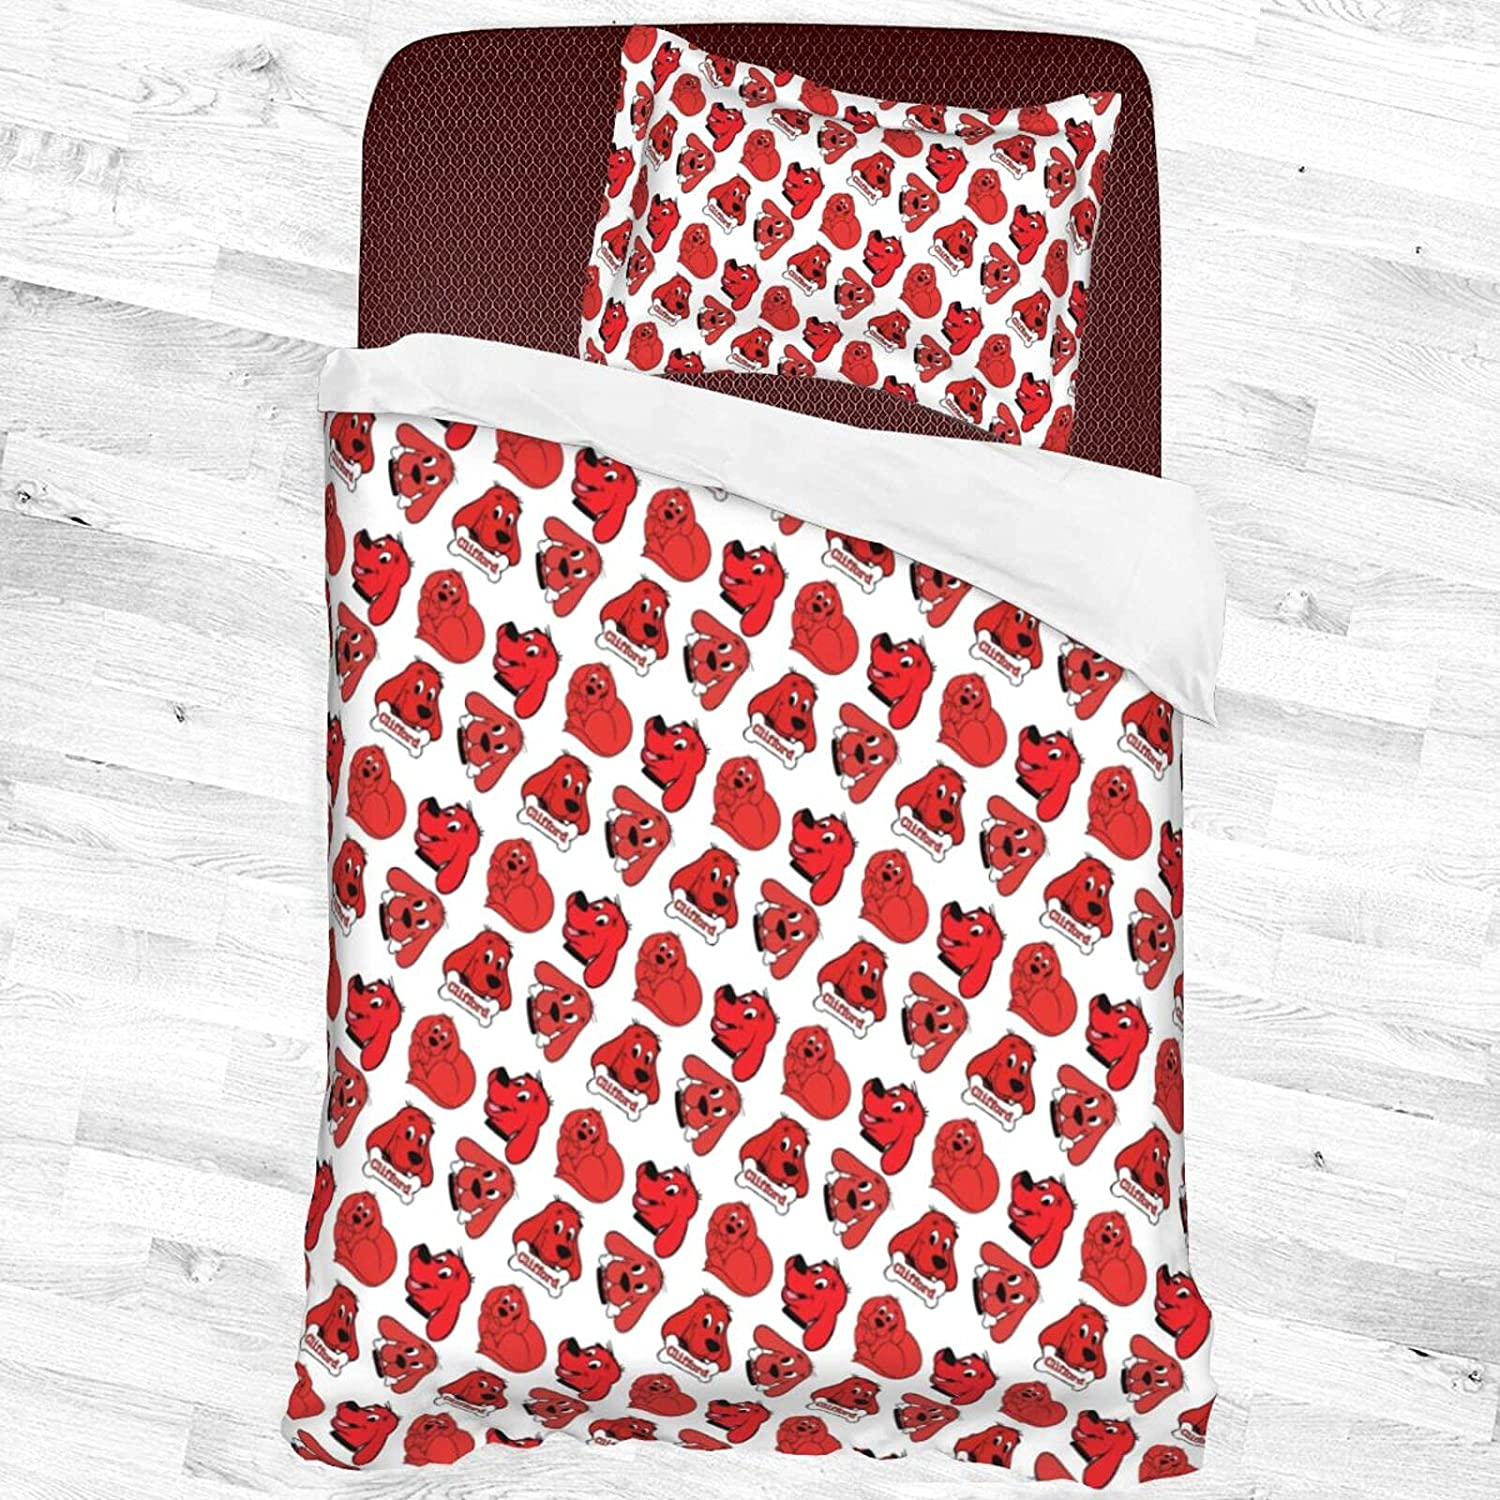 Cli.Ffo.Rd The Big Red Dog Decorative Piece with Chicago Mall Bedding 1 Set Branded goods 2